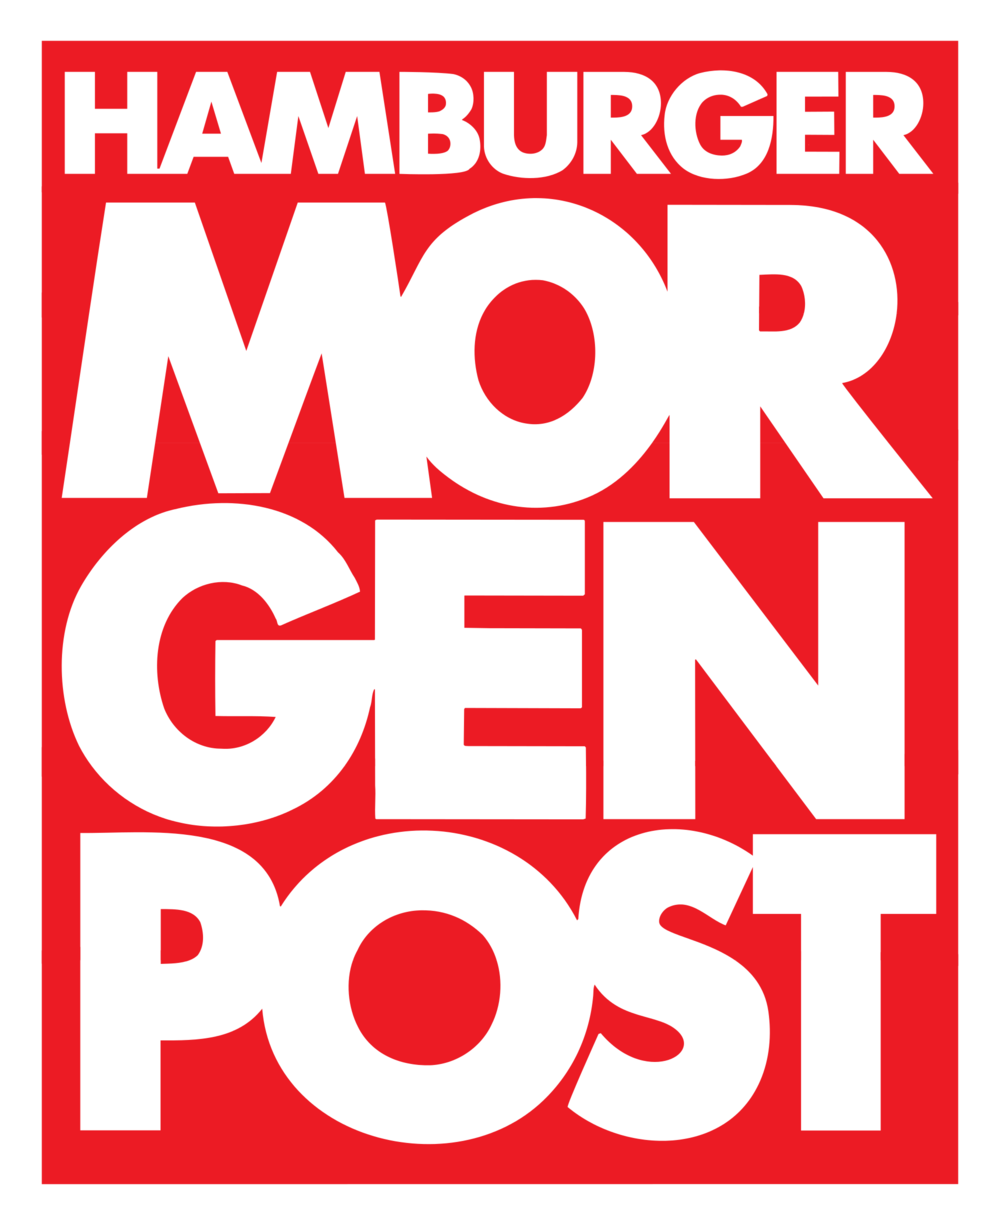 Hamburger Morgenpost.png